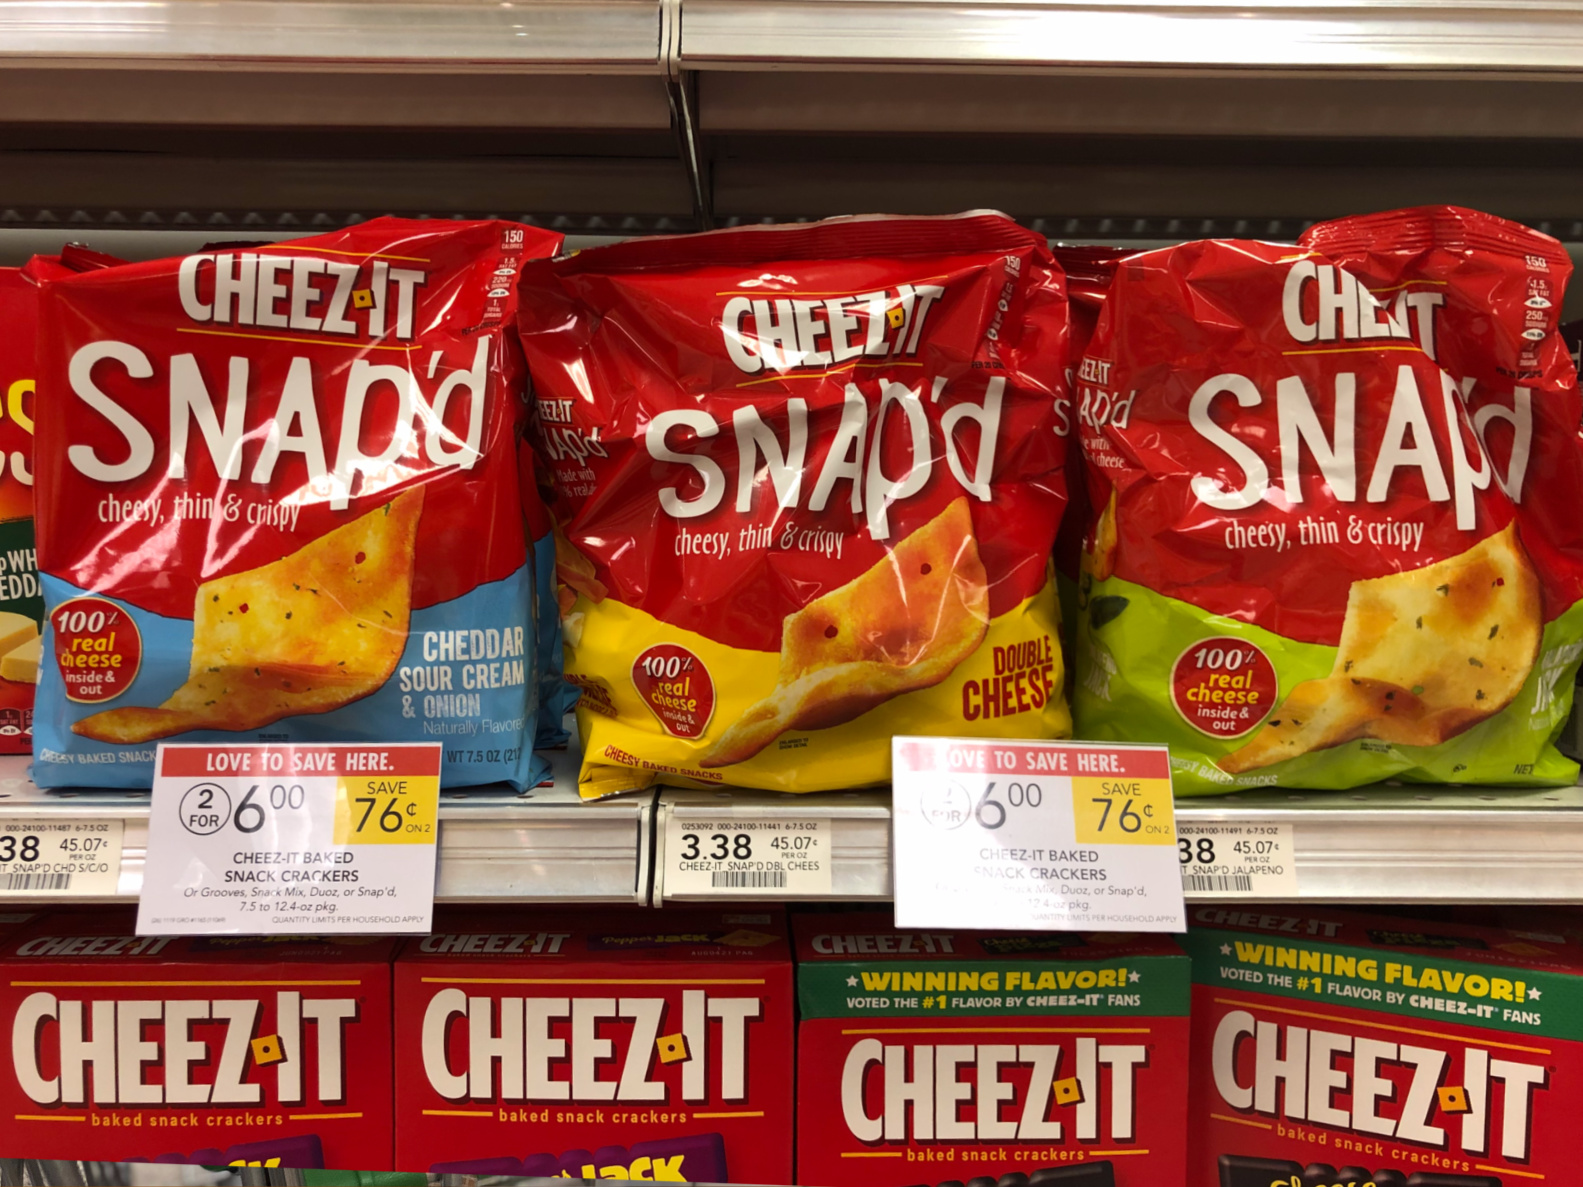 Stock Up On Tasty Cheez-It Snap'd For All Your Holiday Celebrations on I Heart Publix